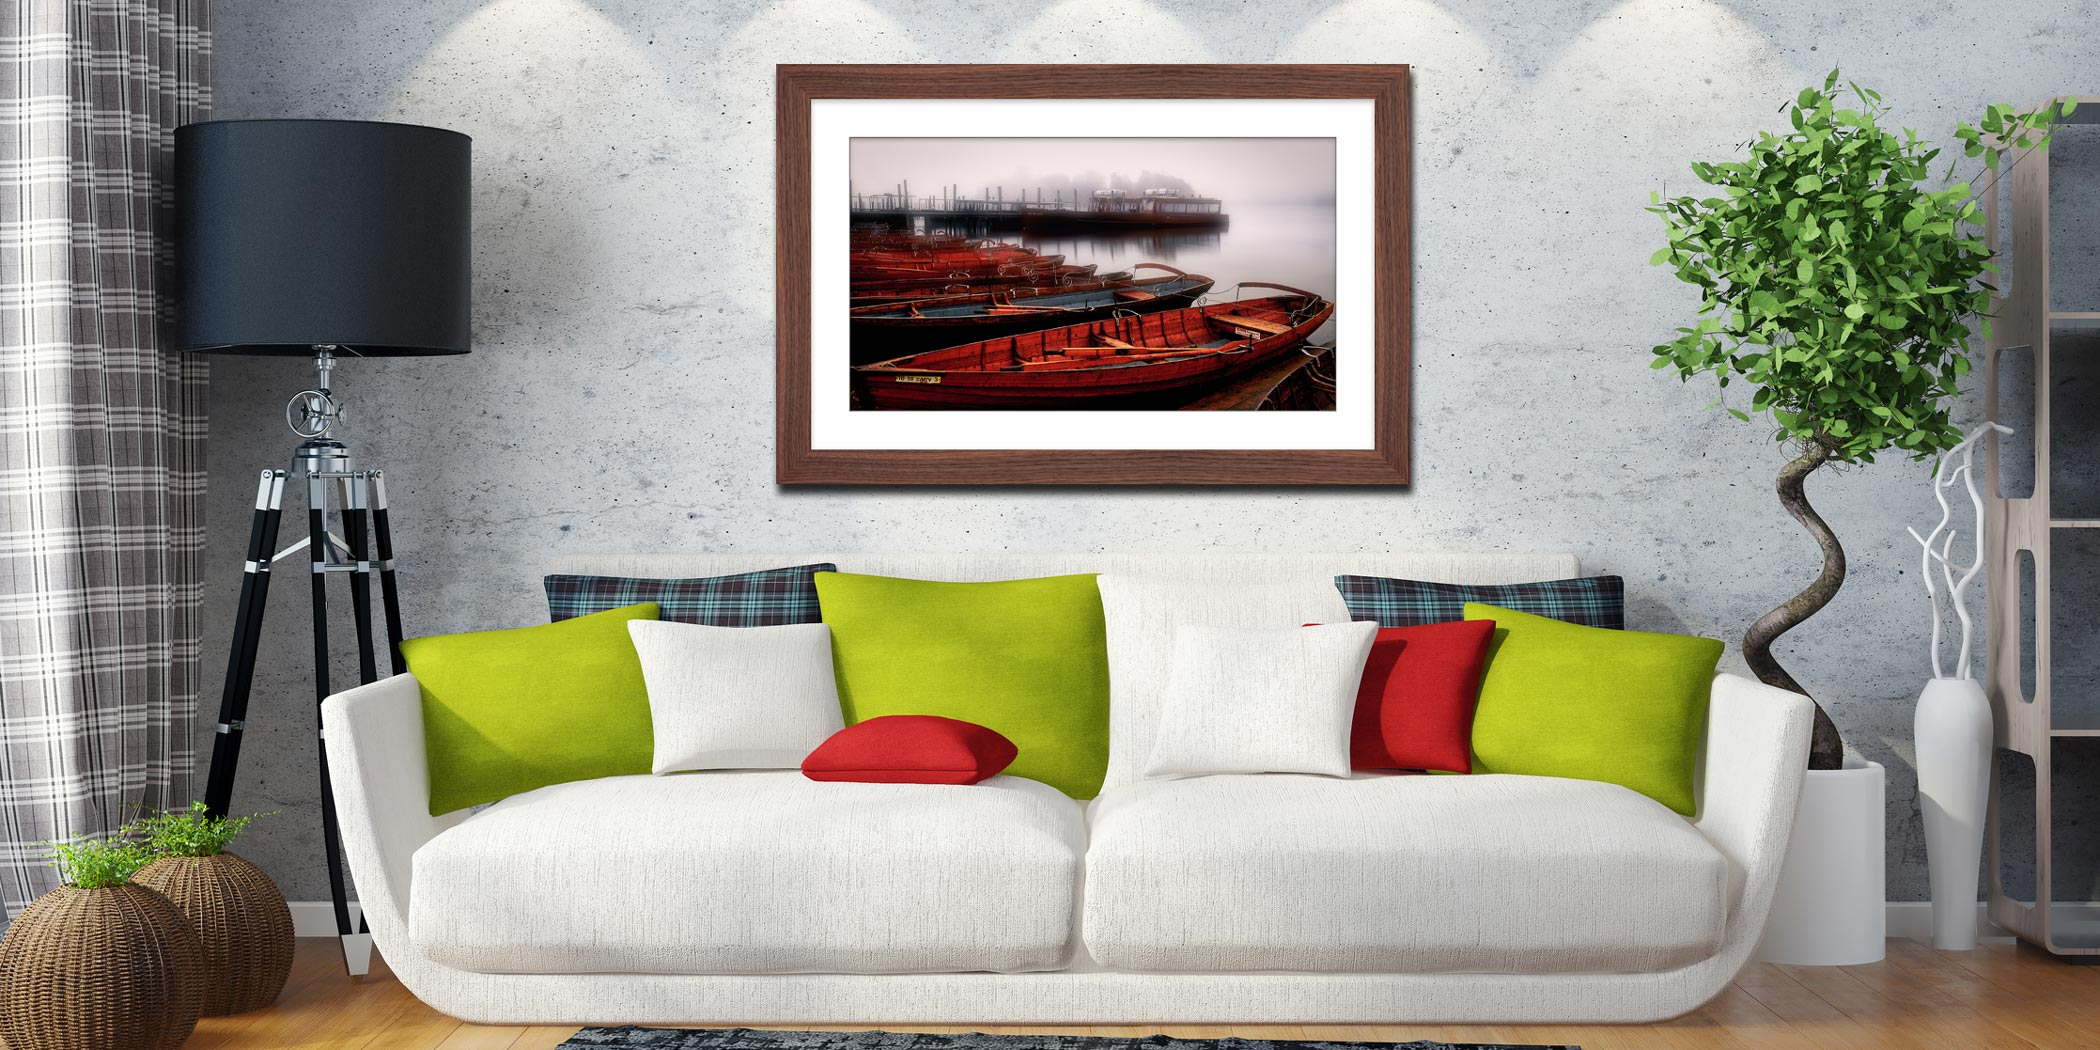 Red Boats in the Mist - Black White Framed Print with Mount on Wall